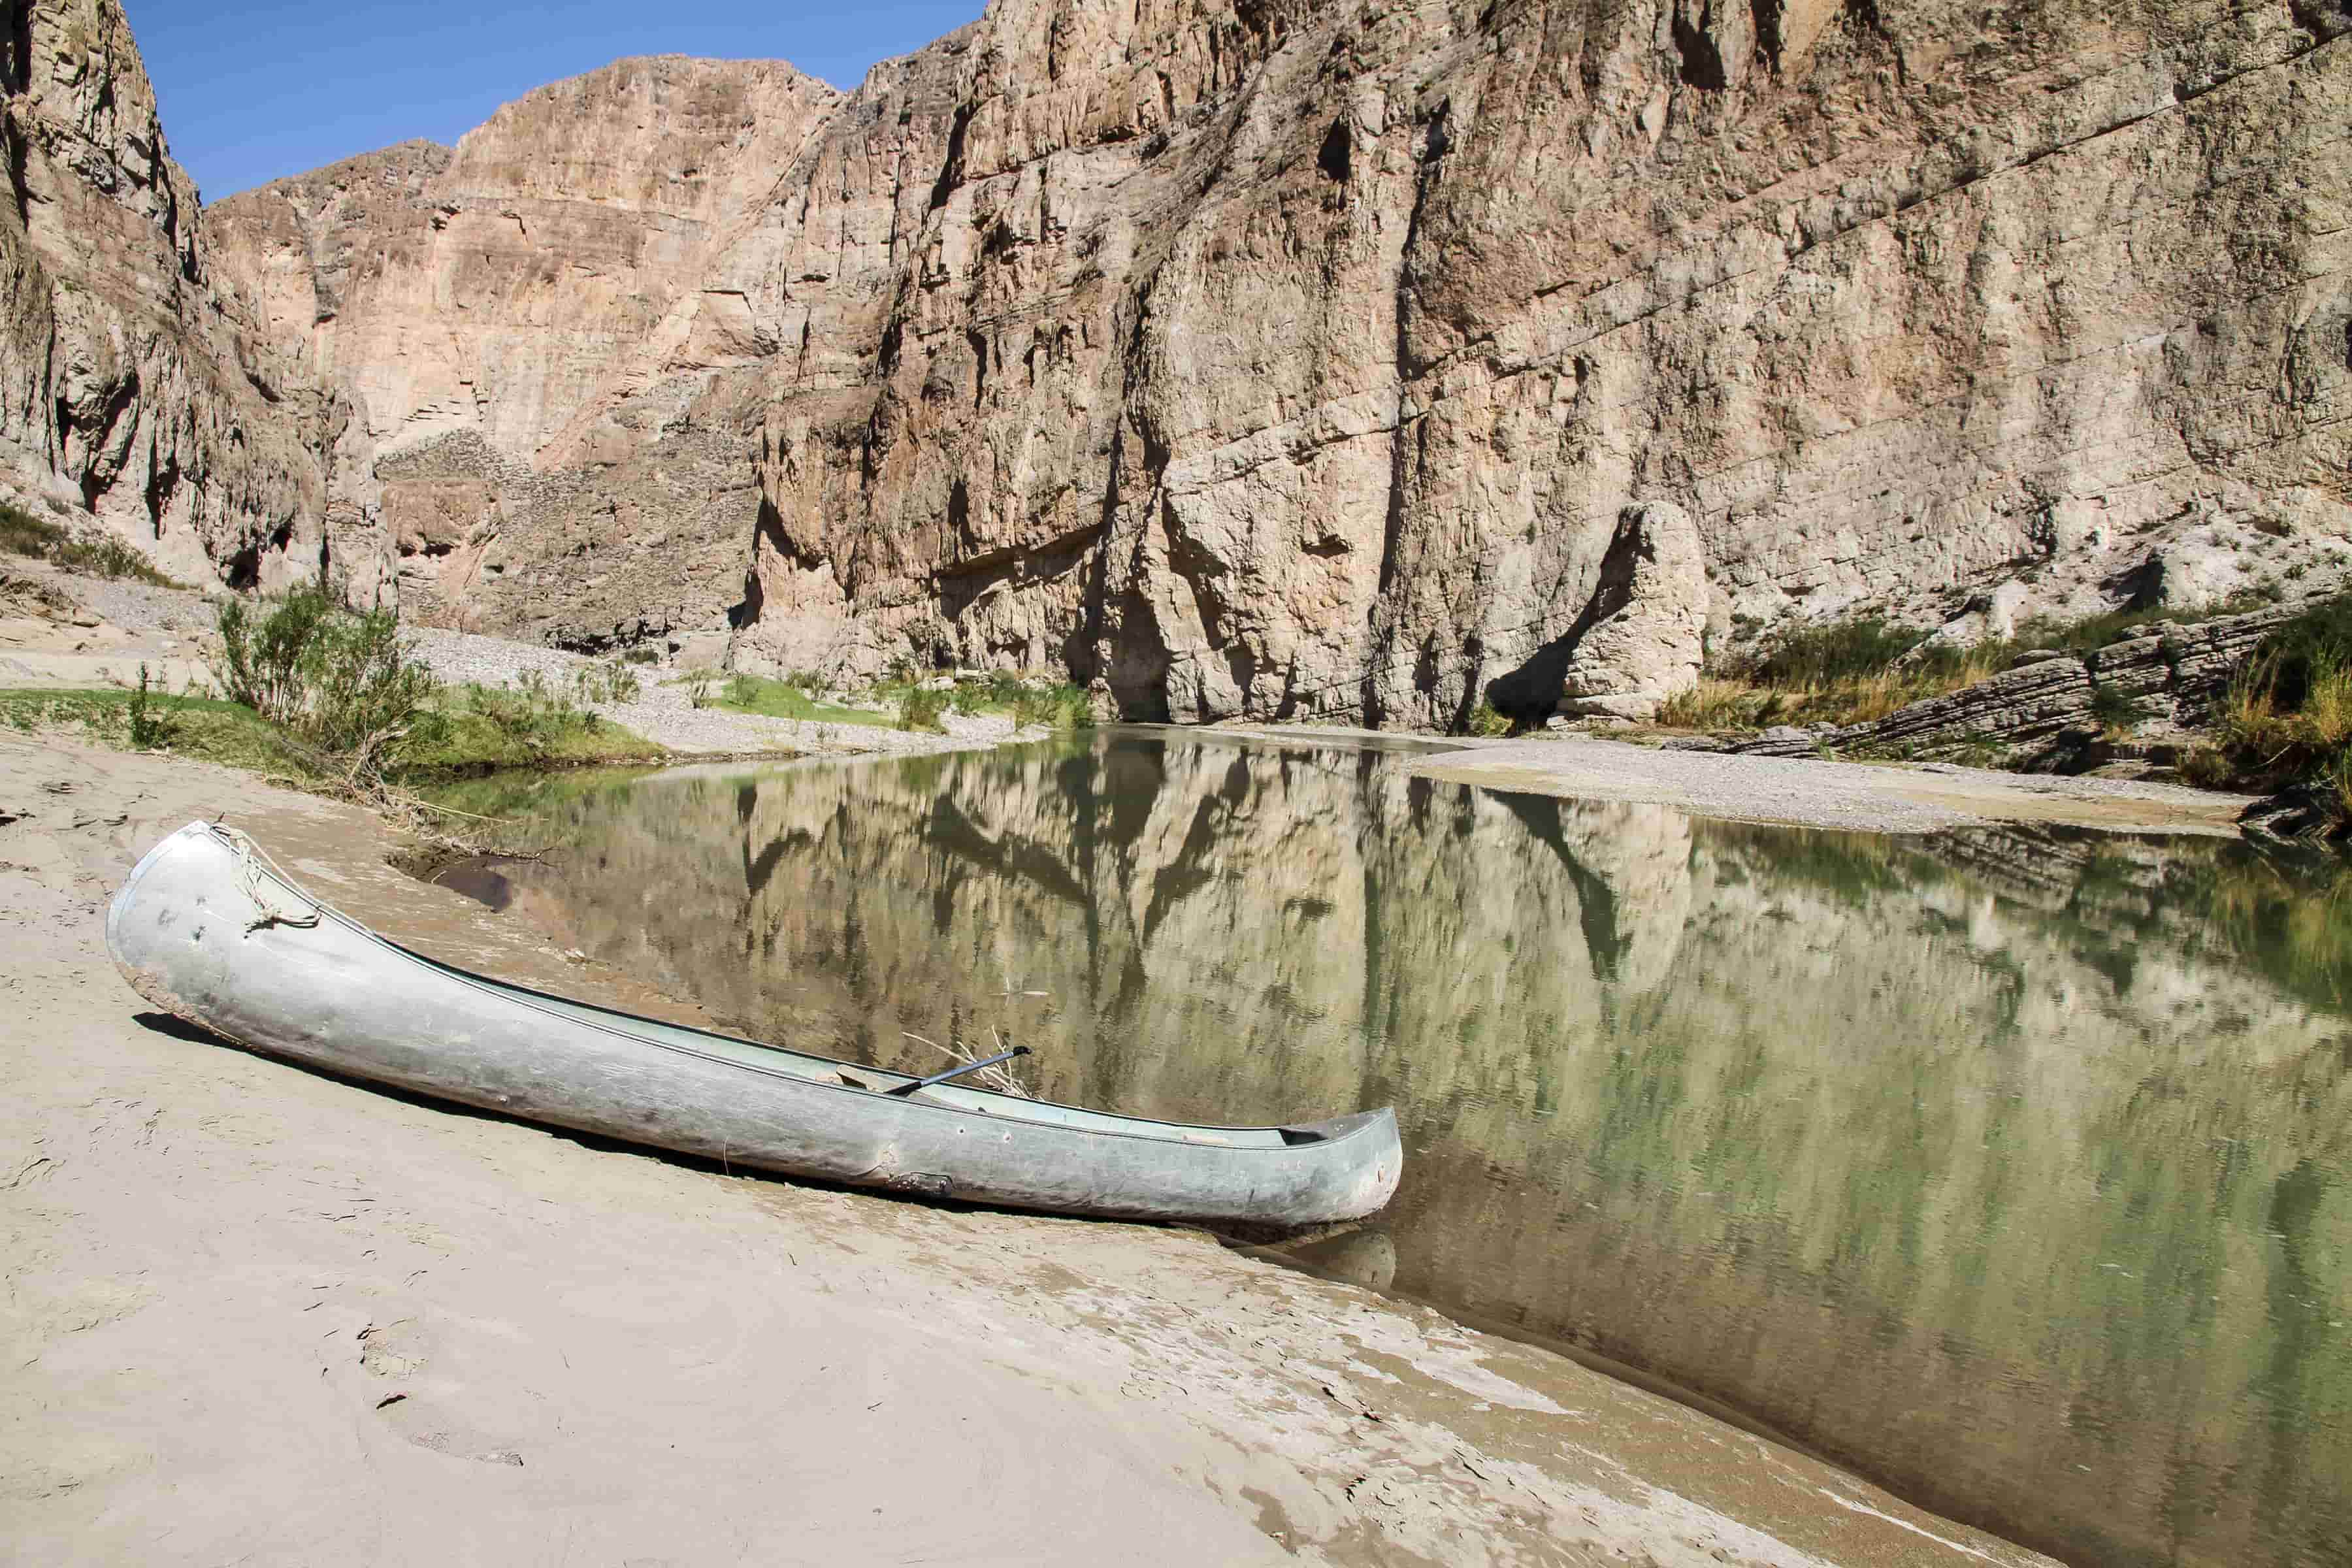 canoe on the river banks in big bend national park